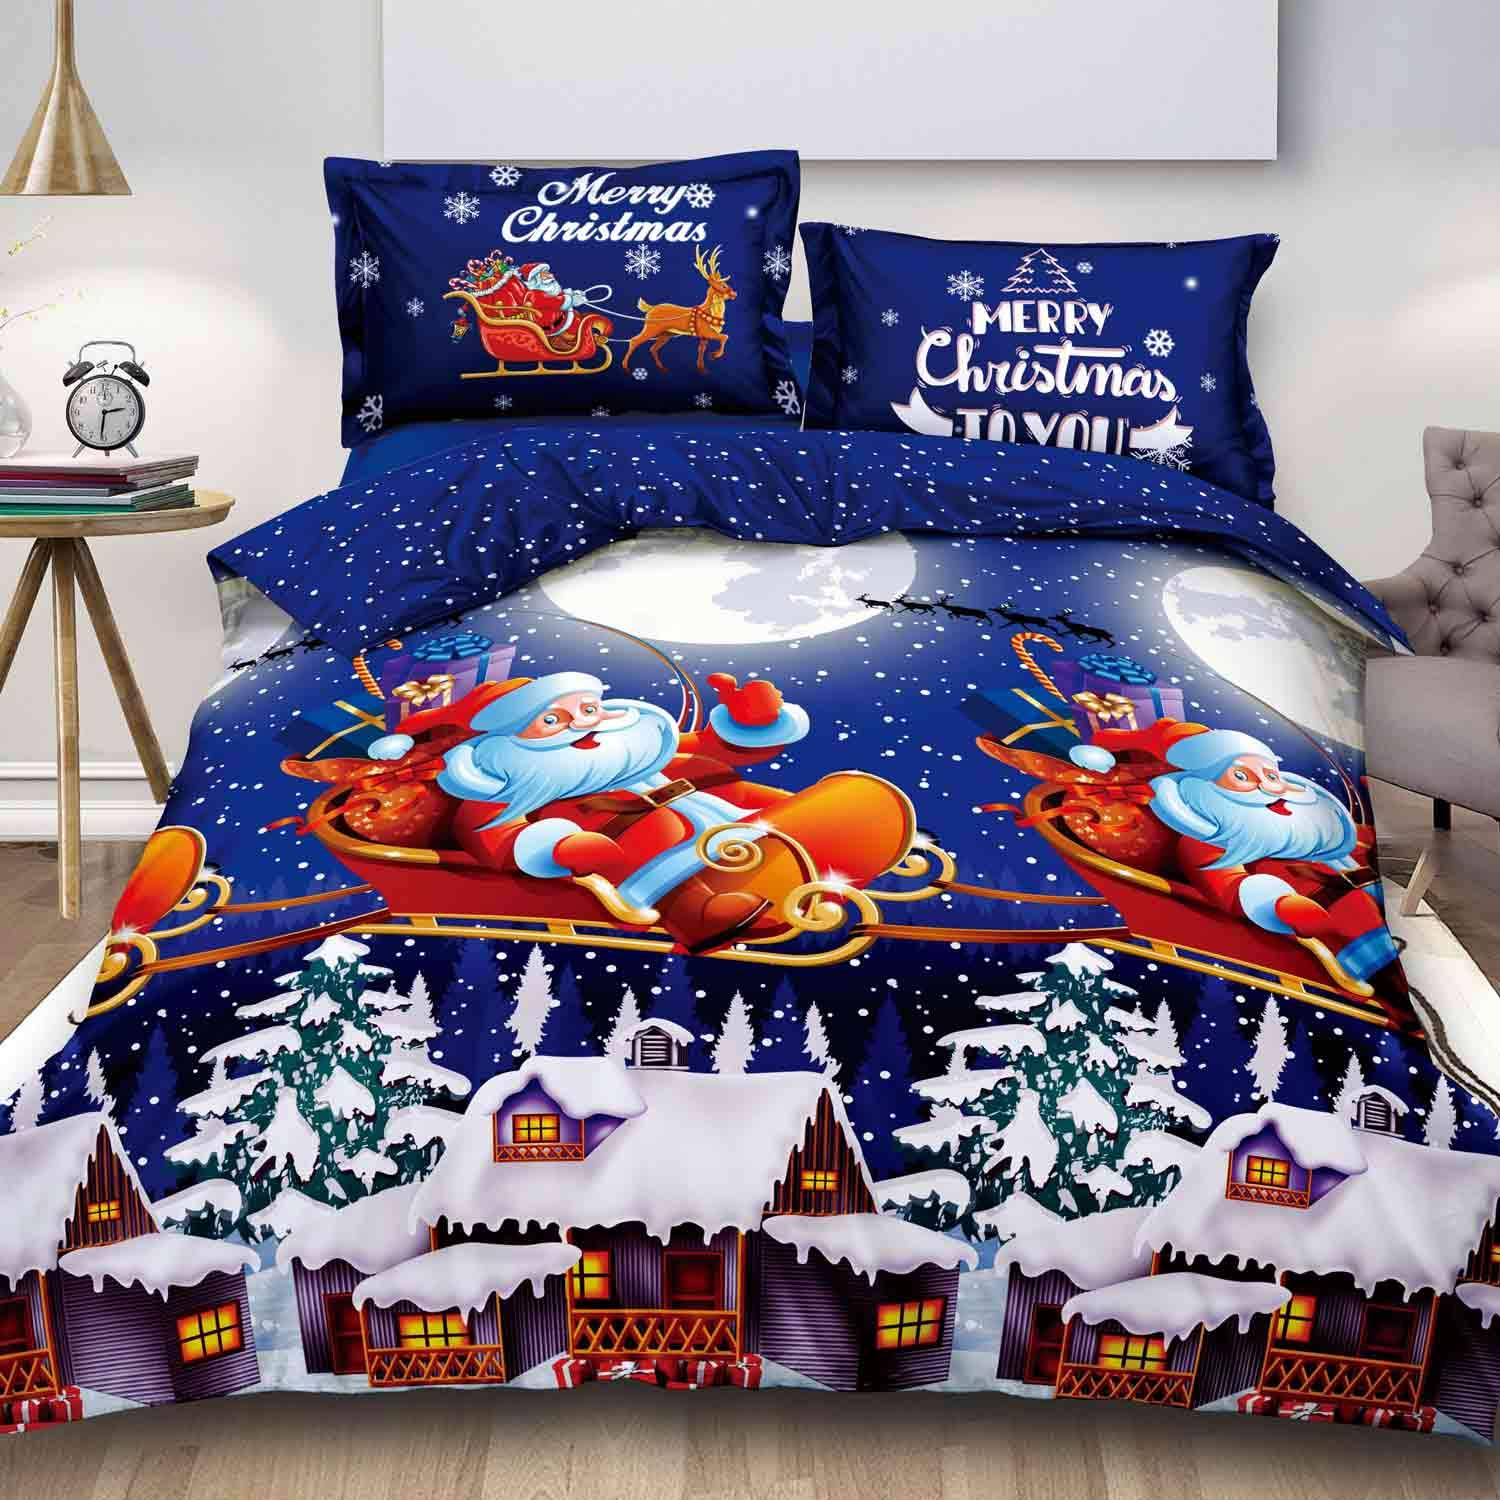 Navy Blue Snow House Pattern Microfiber Comforter Cover with Zipper Closure, Ties - Best Modern Style for Men Women Teen